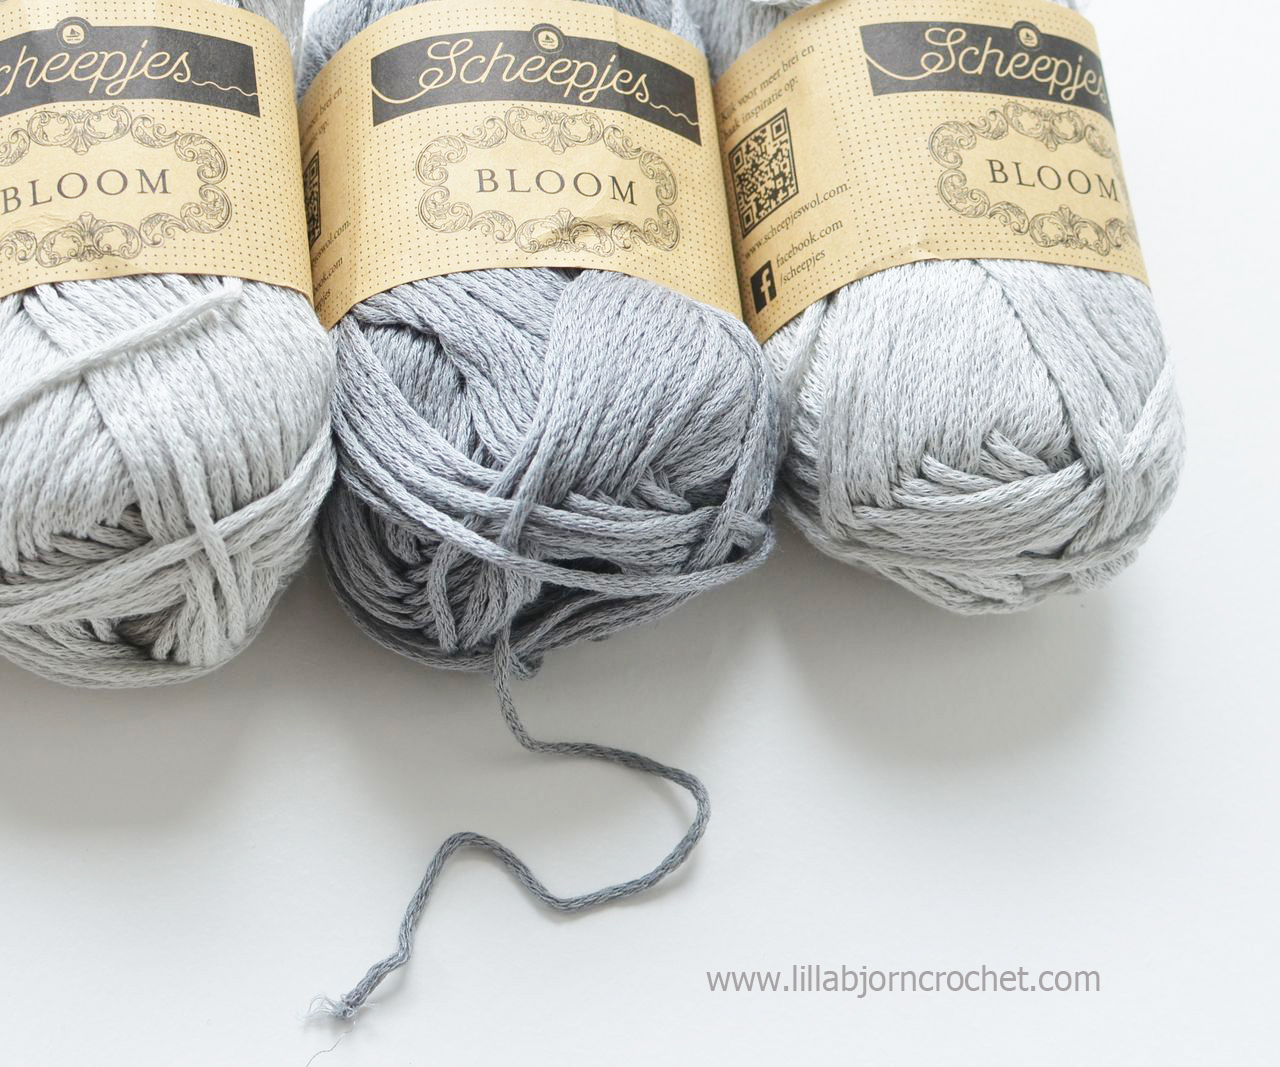 Bloom from Scheepjes - yarn review by Lilla Bjorn Crochet